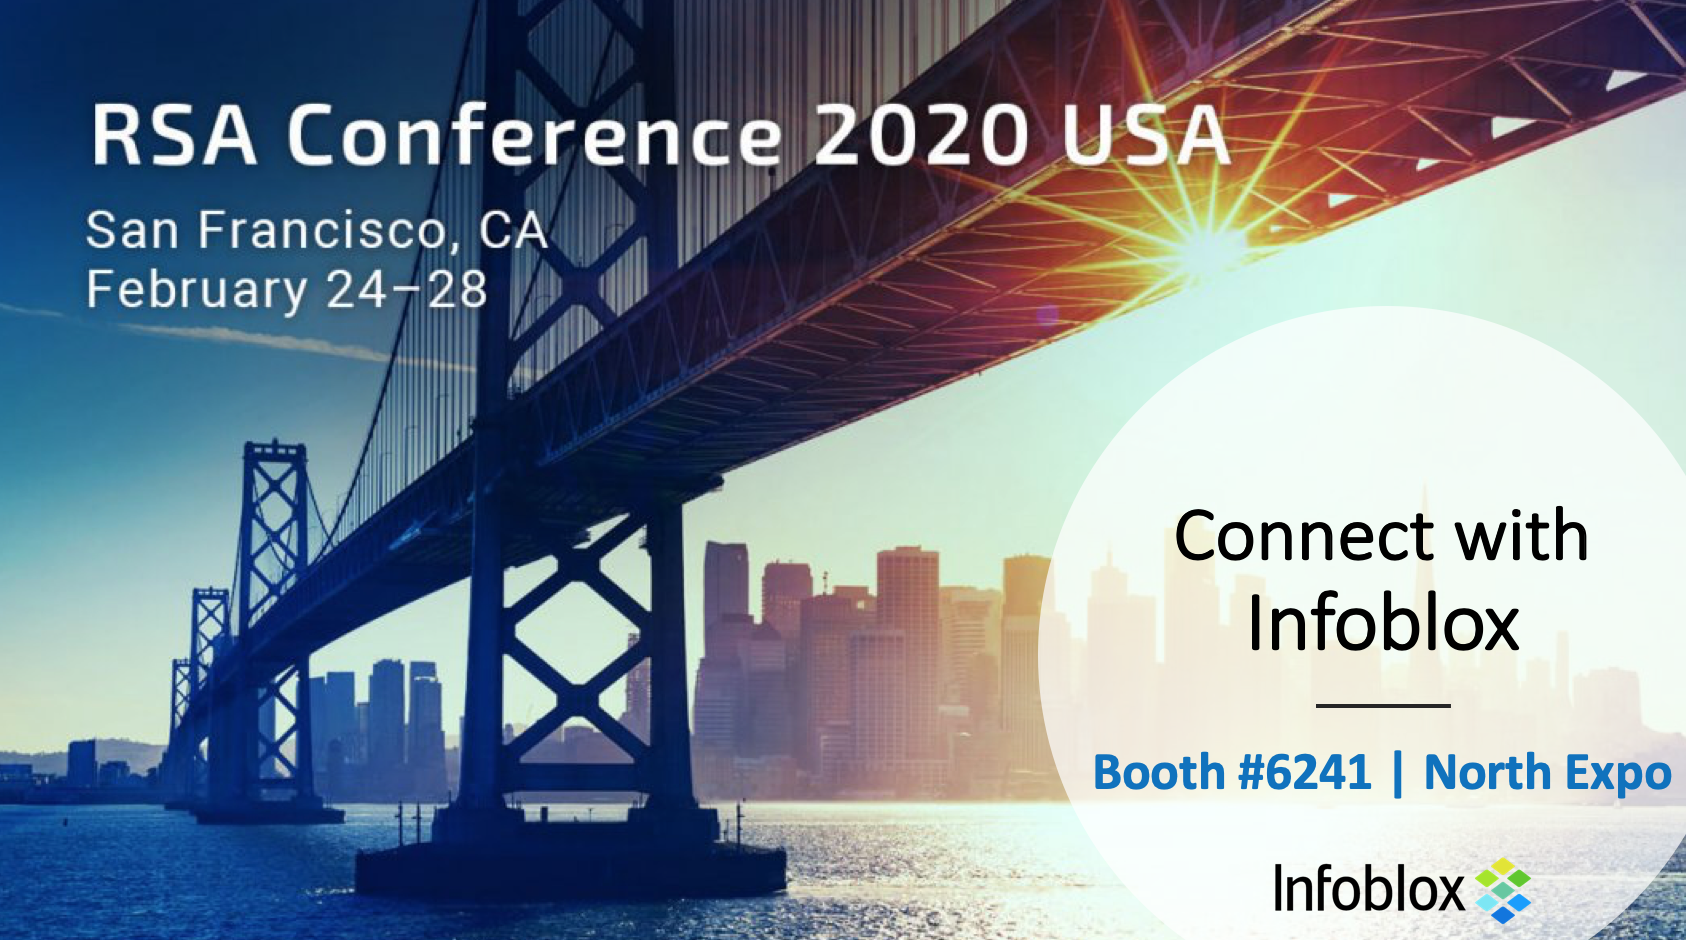 Connect With Infoblox at RSA Conference USA 2020